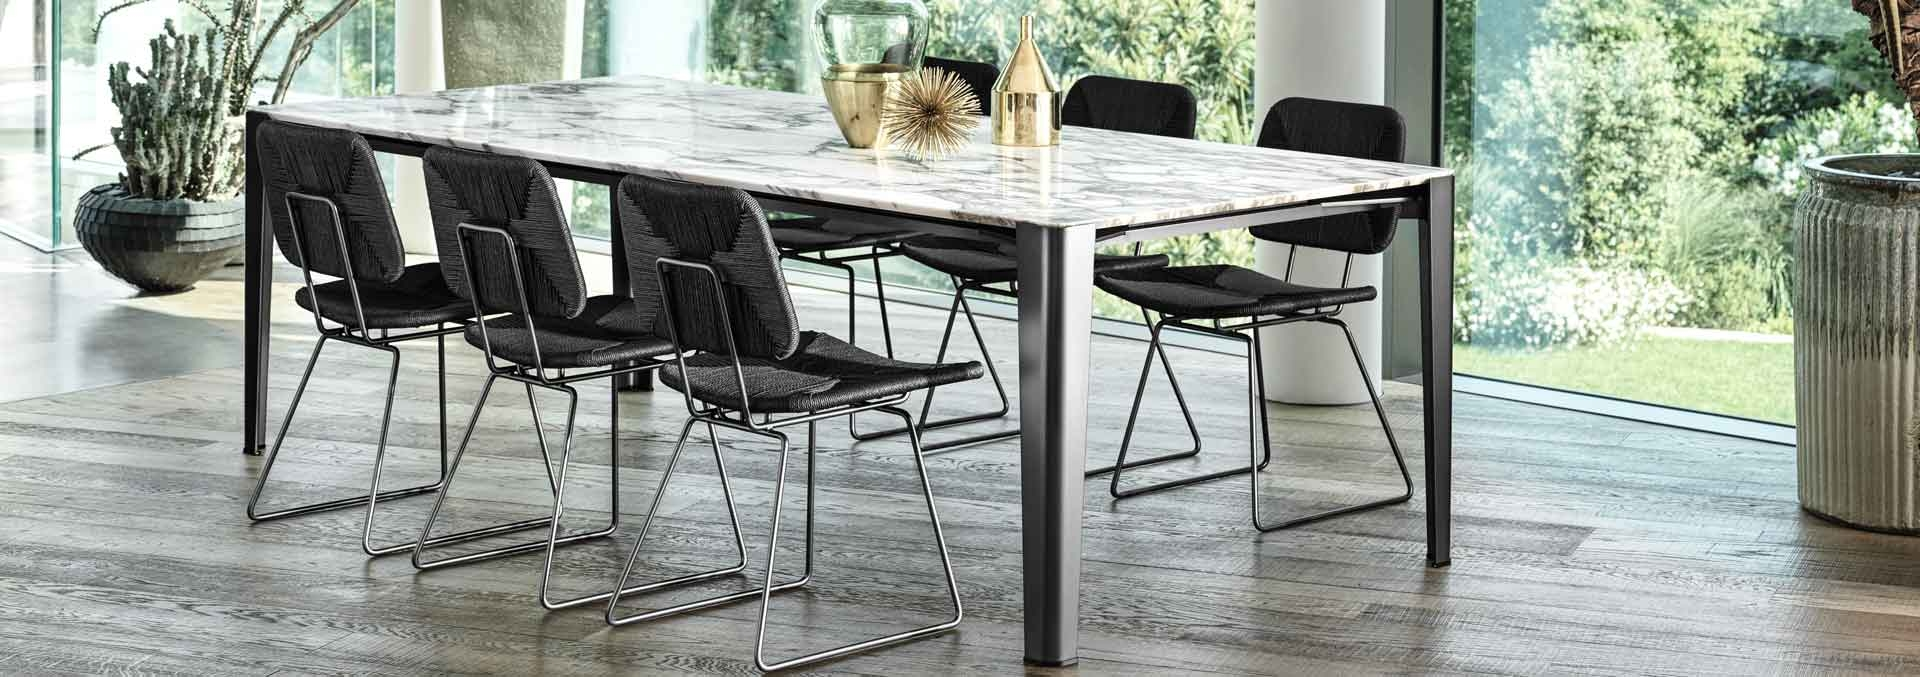 Dining Chairs And Armchairs Bar Stools Flexform